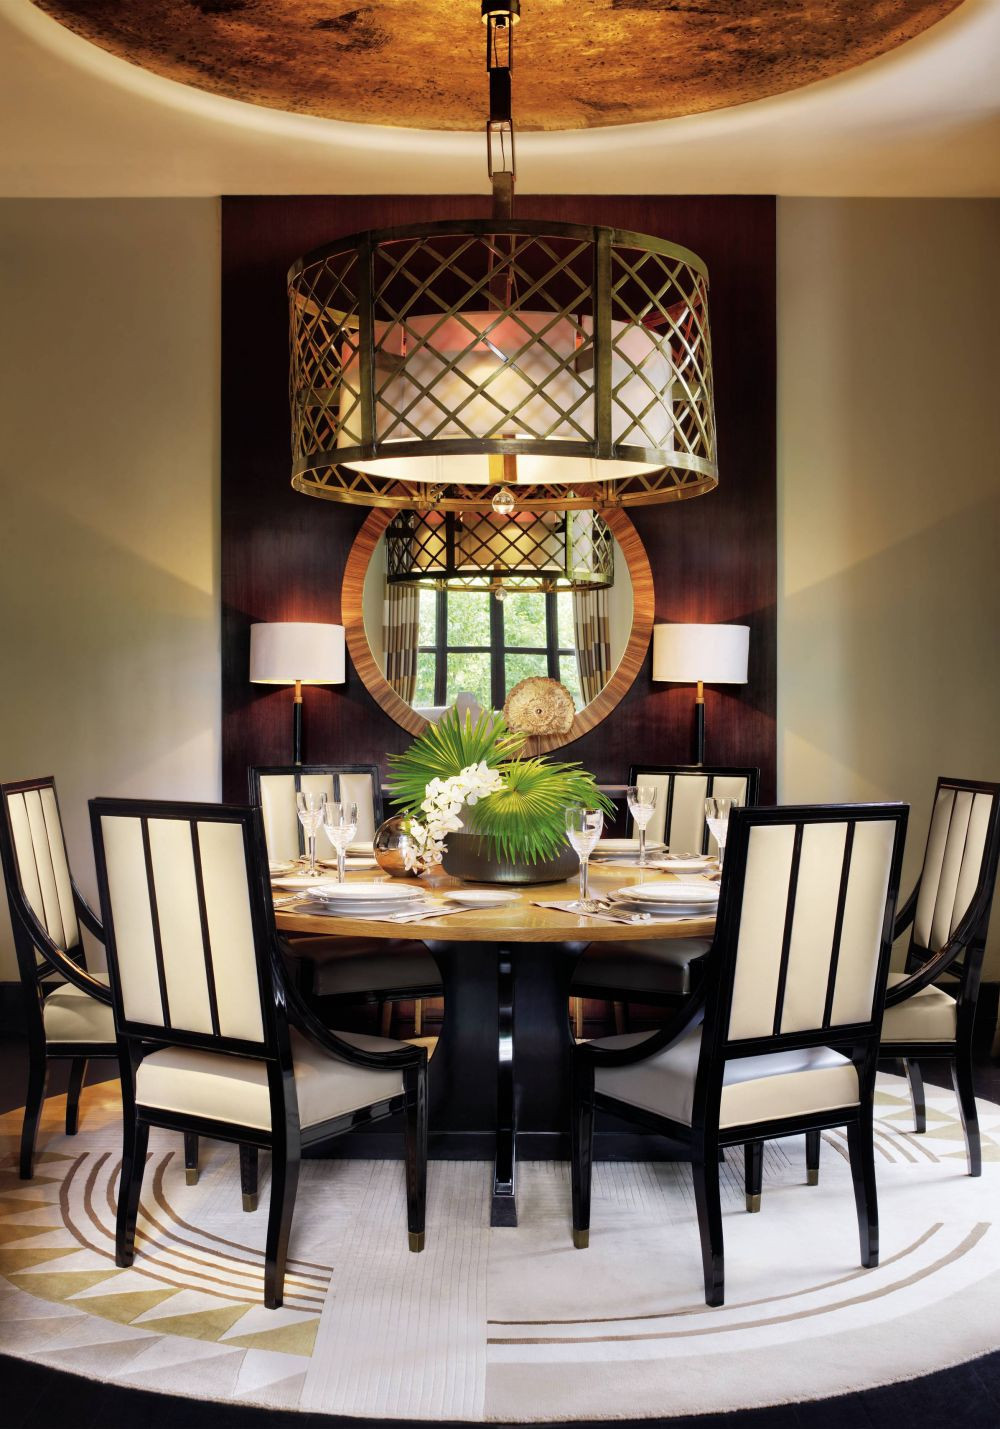 Best ideas about Contemporary Dining Room . Save or Pin Contemporary Dining Room by Jean Louis Deniot by Now.